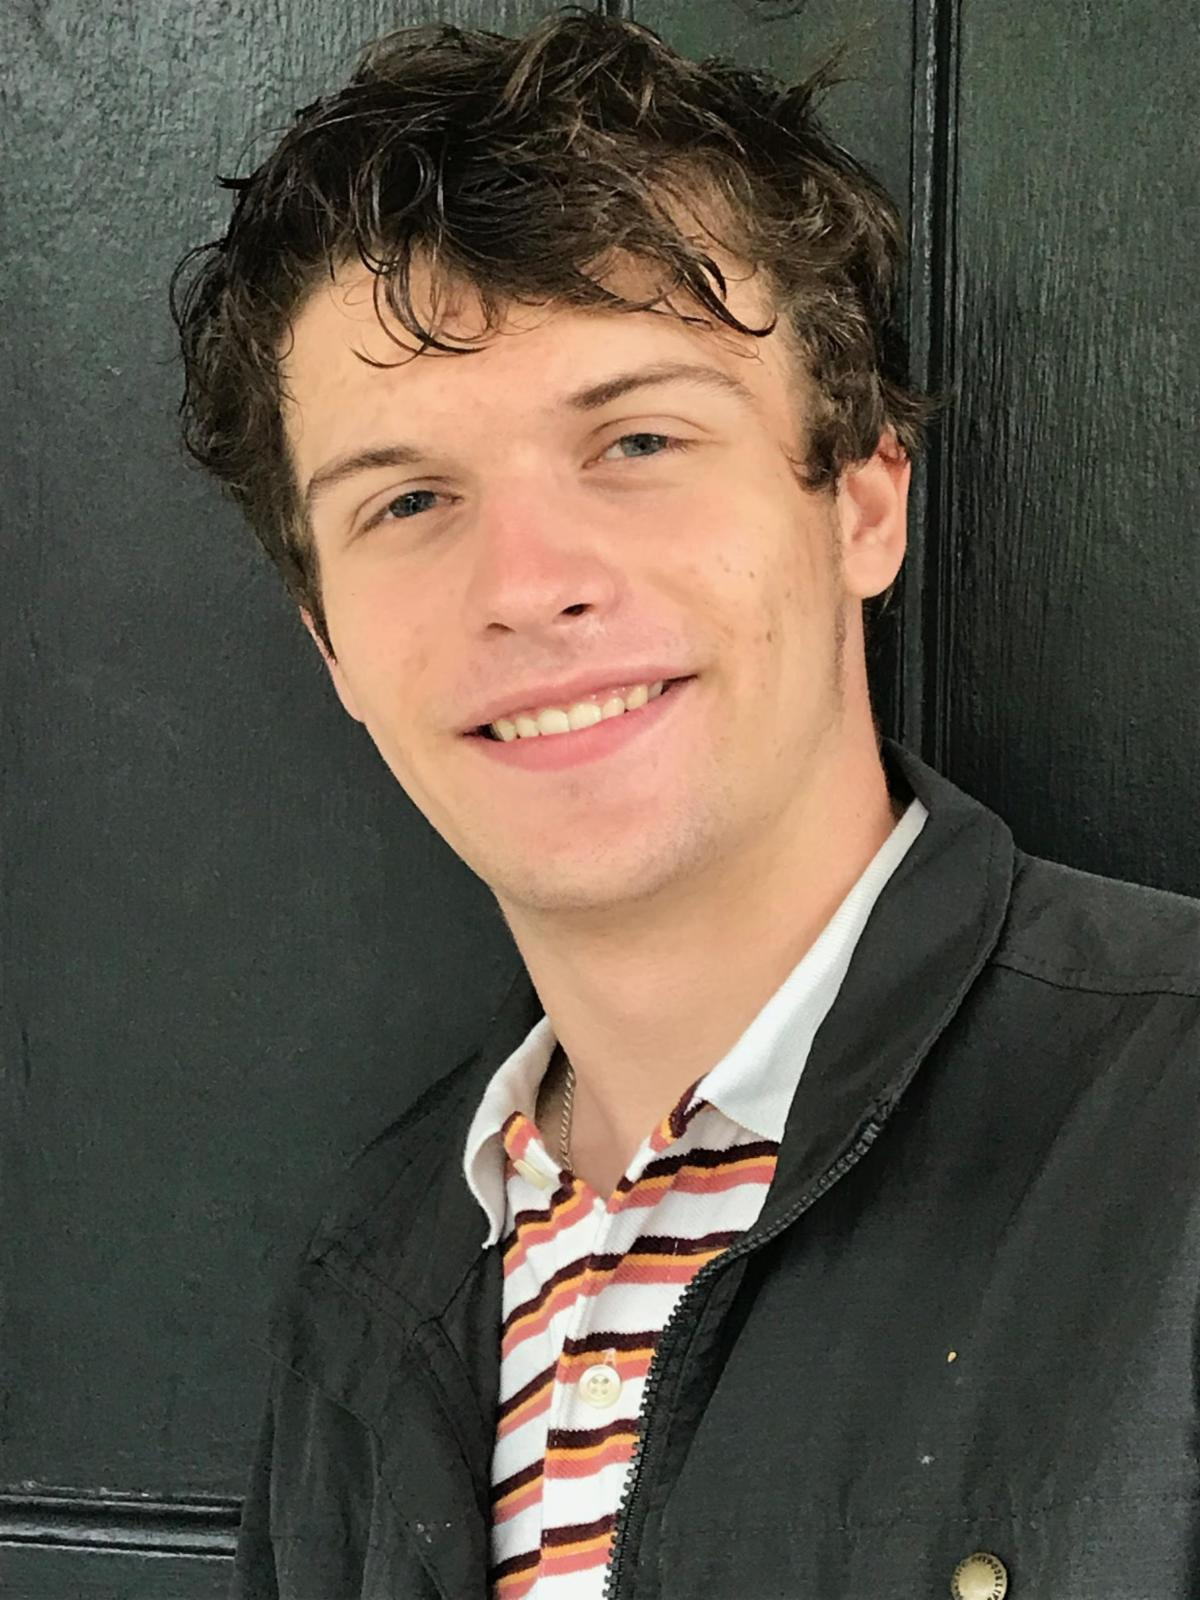 Young white man wearing a striped shirt standing in front of black background smiling